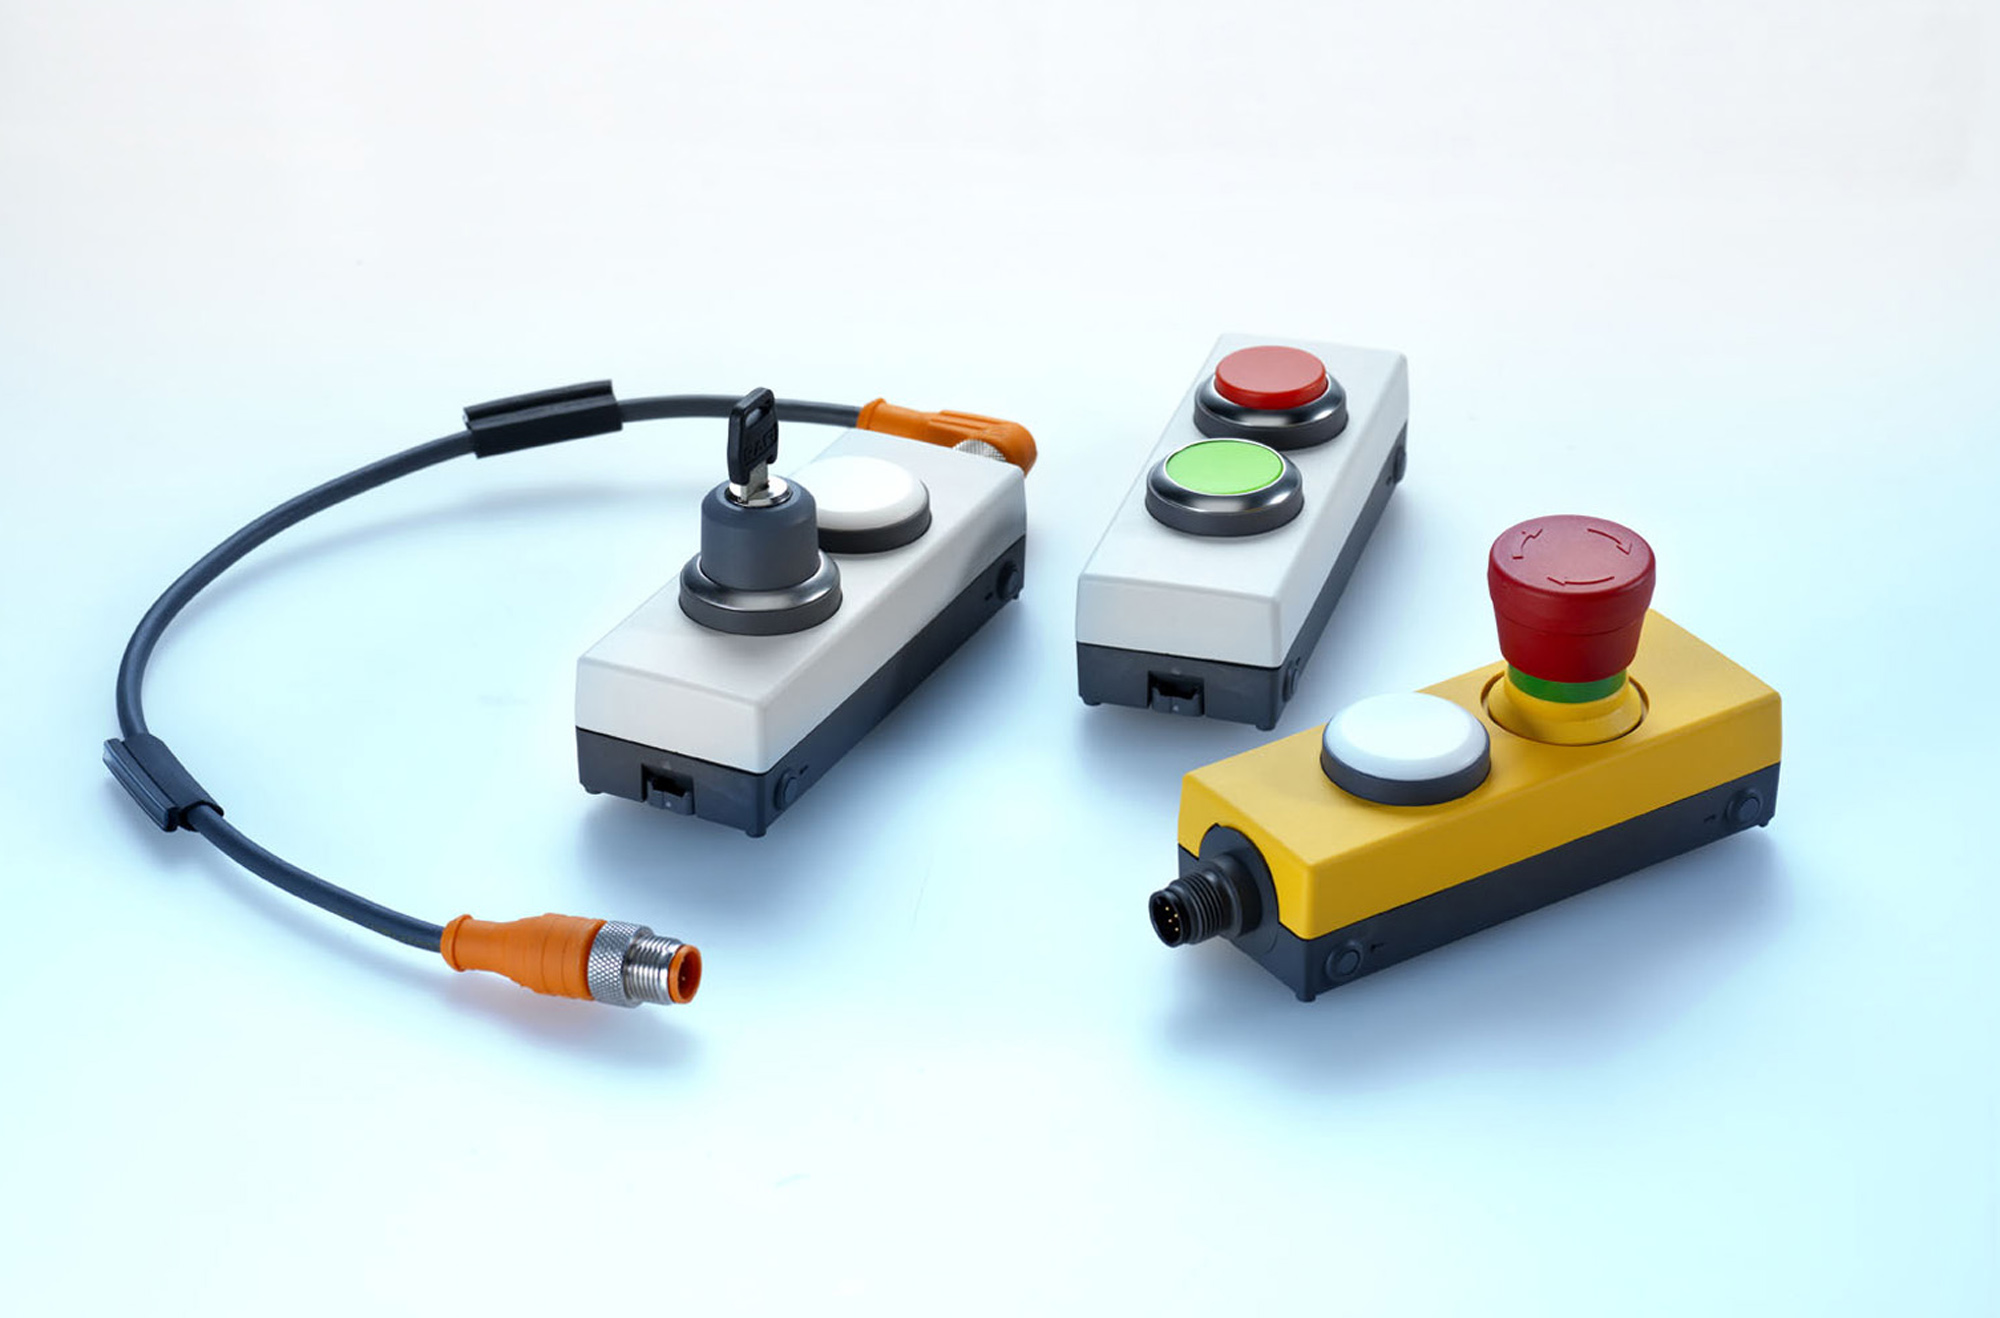 Gii Die Presse Agentur Gmbh Genuine Industry Information Toggle Switches Illuminated Onoff Handle Tipped Led Rafi Now Offers Complete Pre Configured E Box Control Units With M12 Connectors